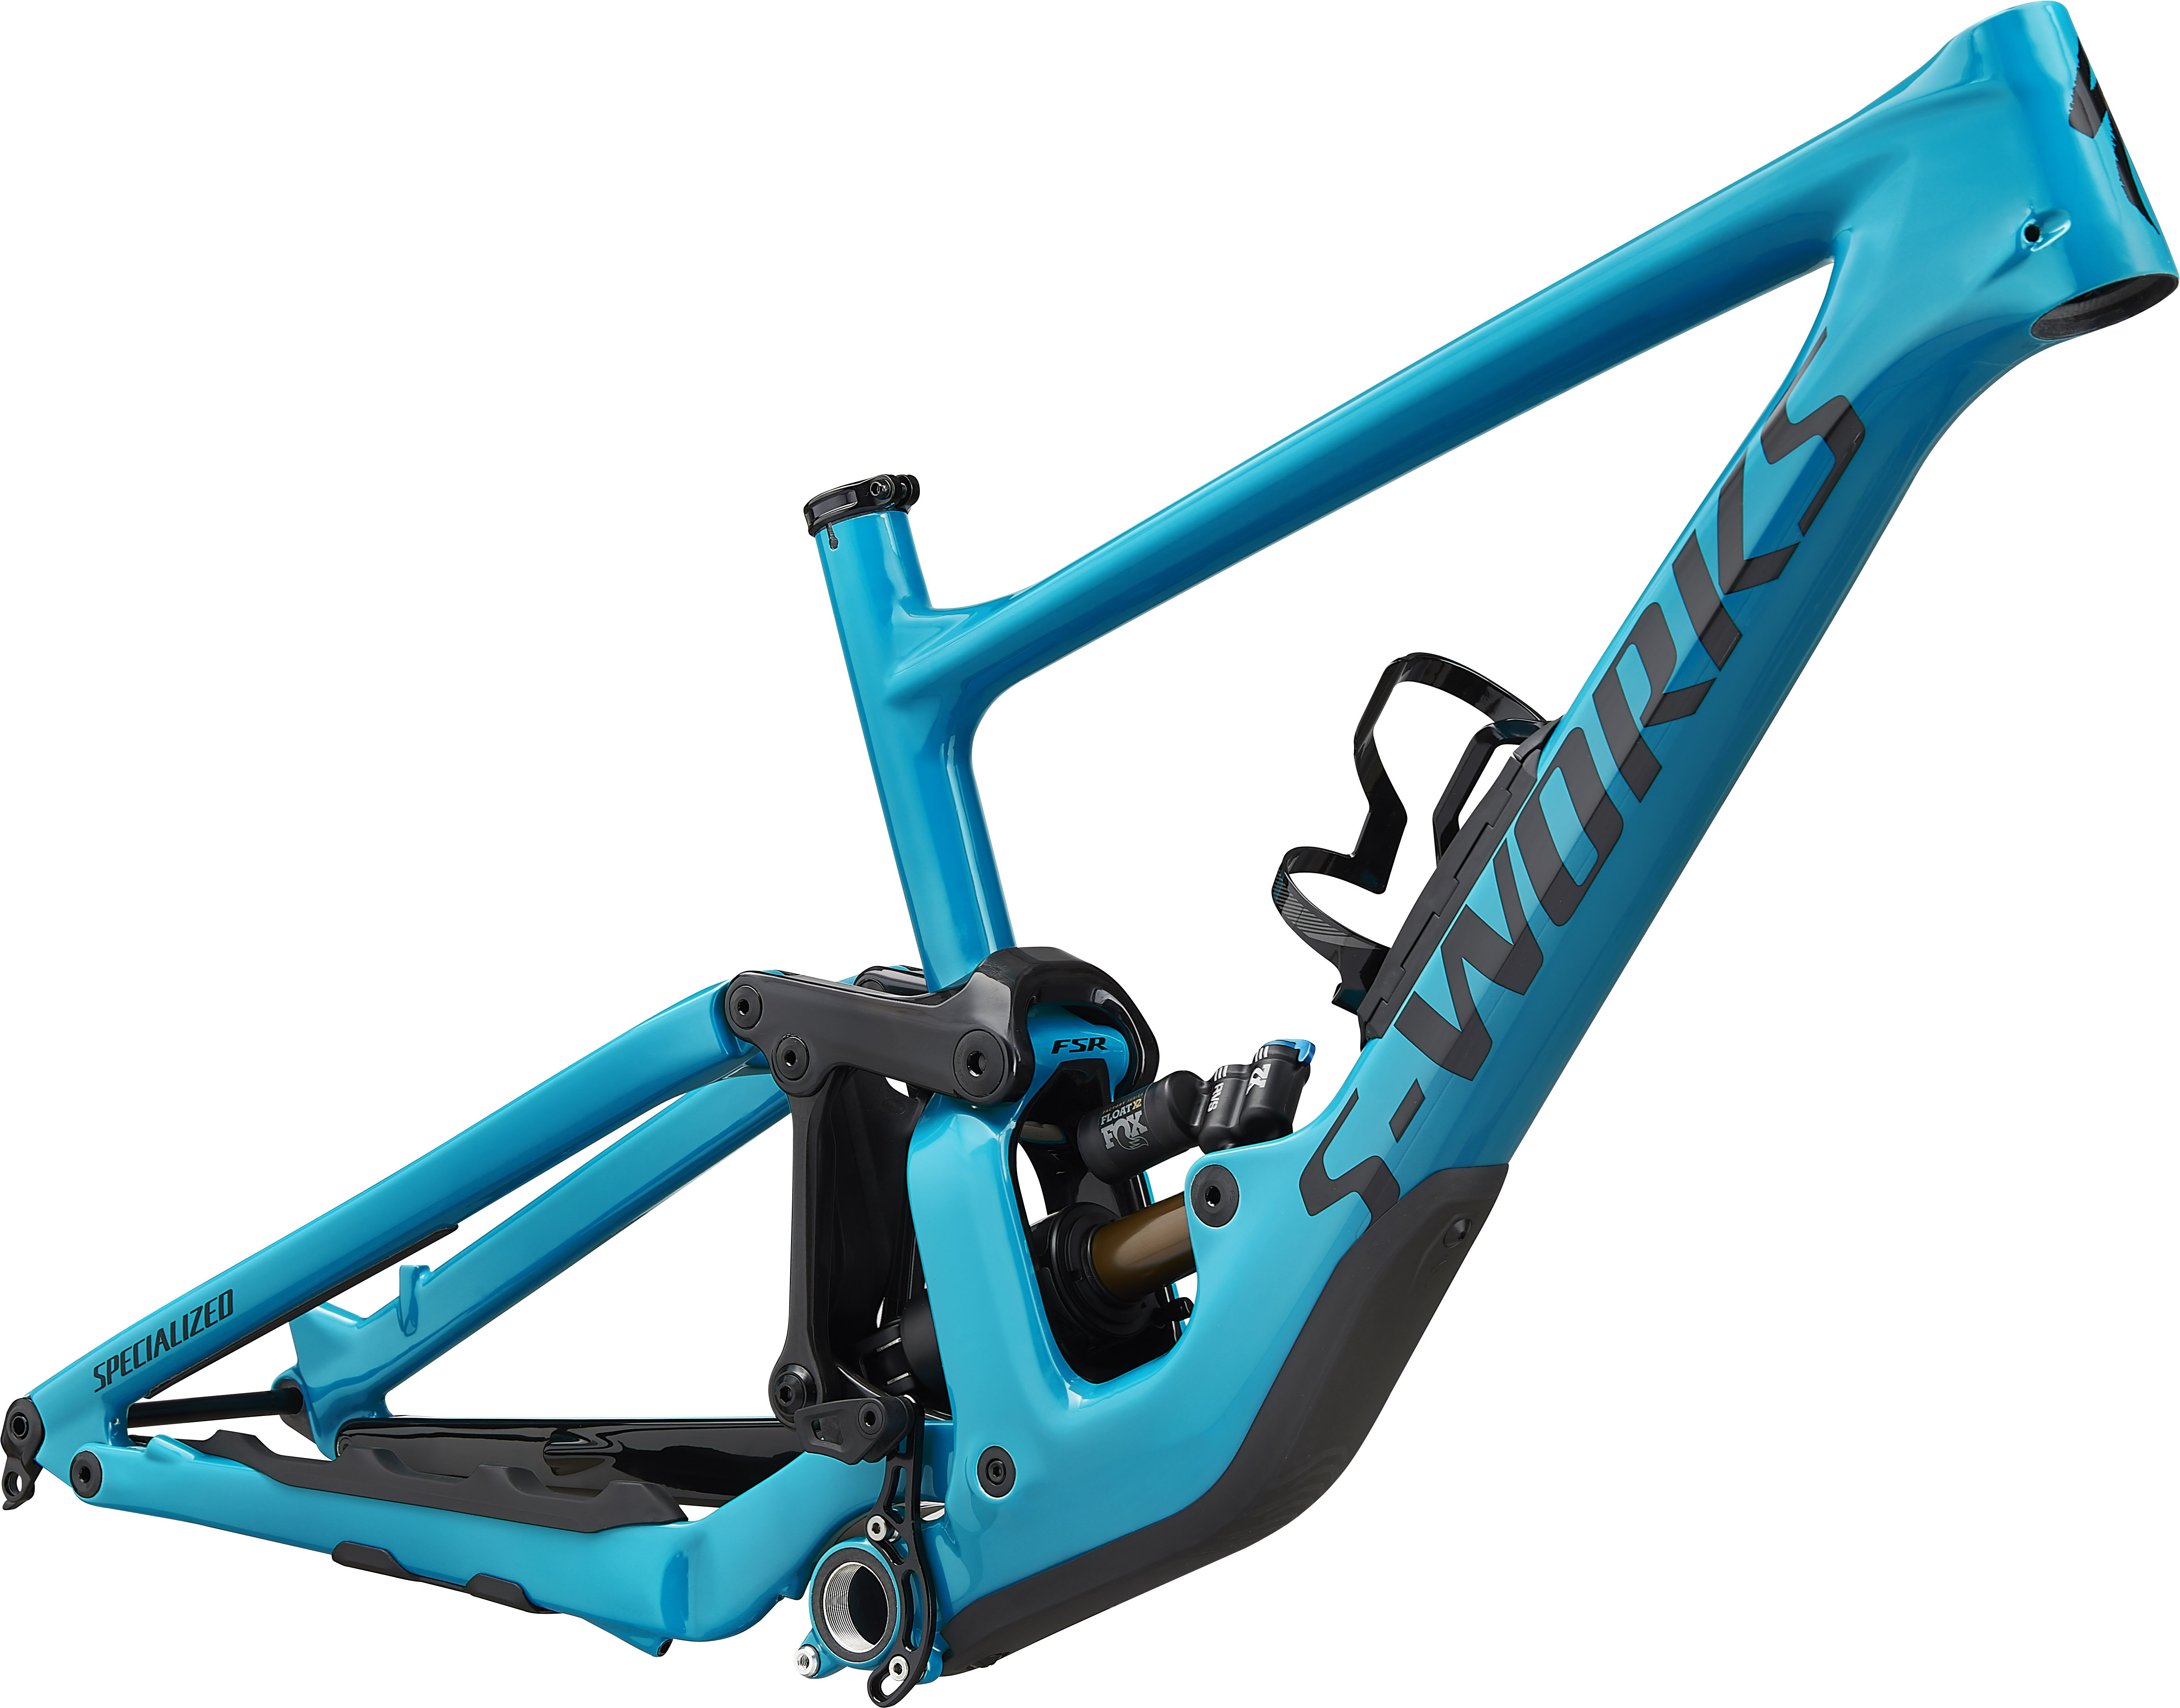 73620-00_ENDURO-SW-CARBON-29-FRM-AQA-FLORED-CARB_HERO.jpg